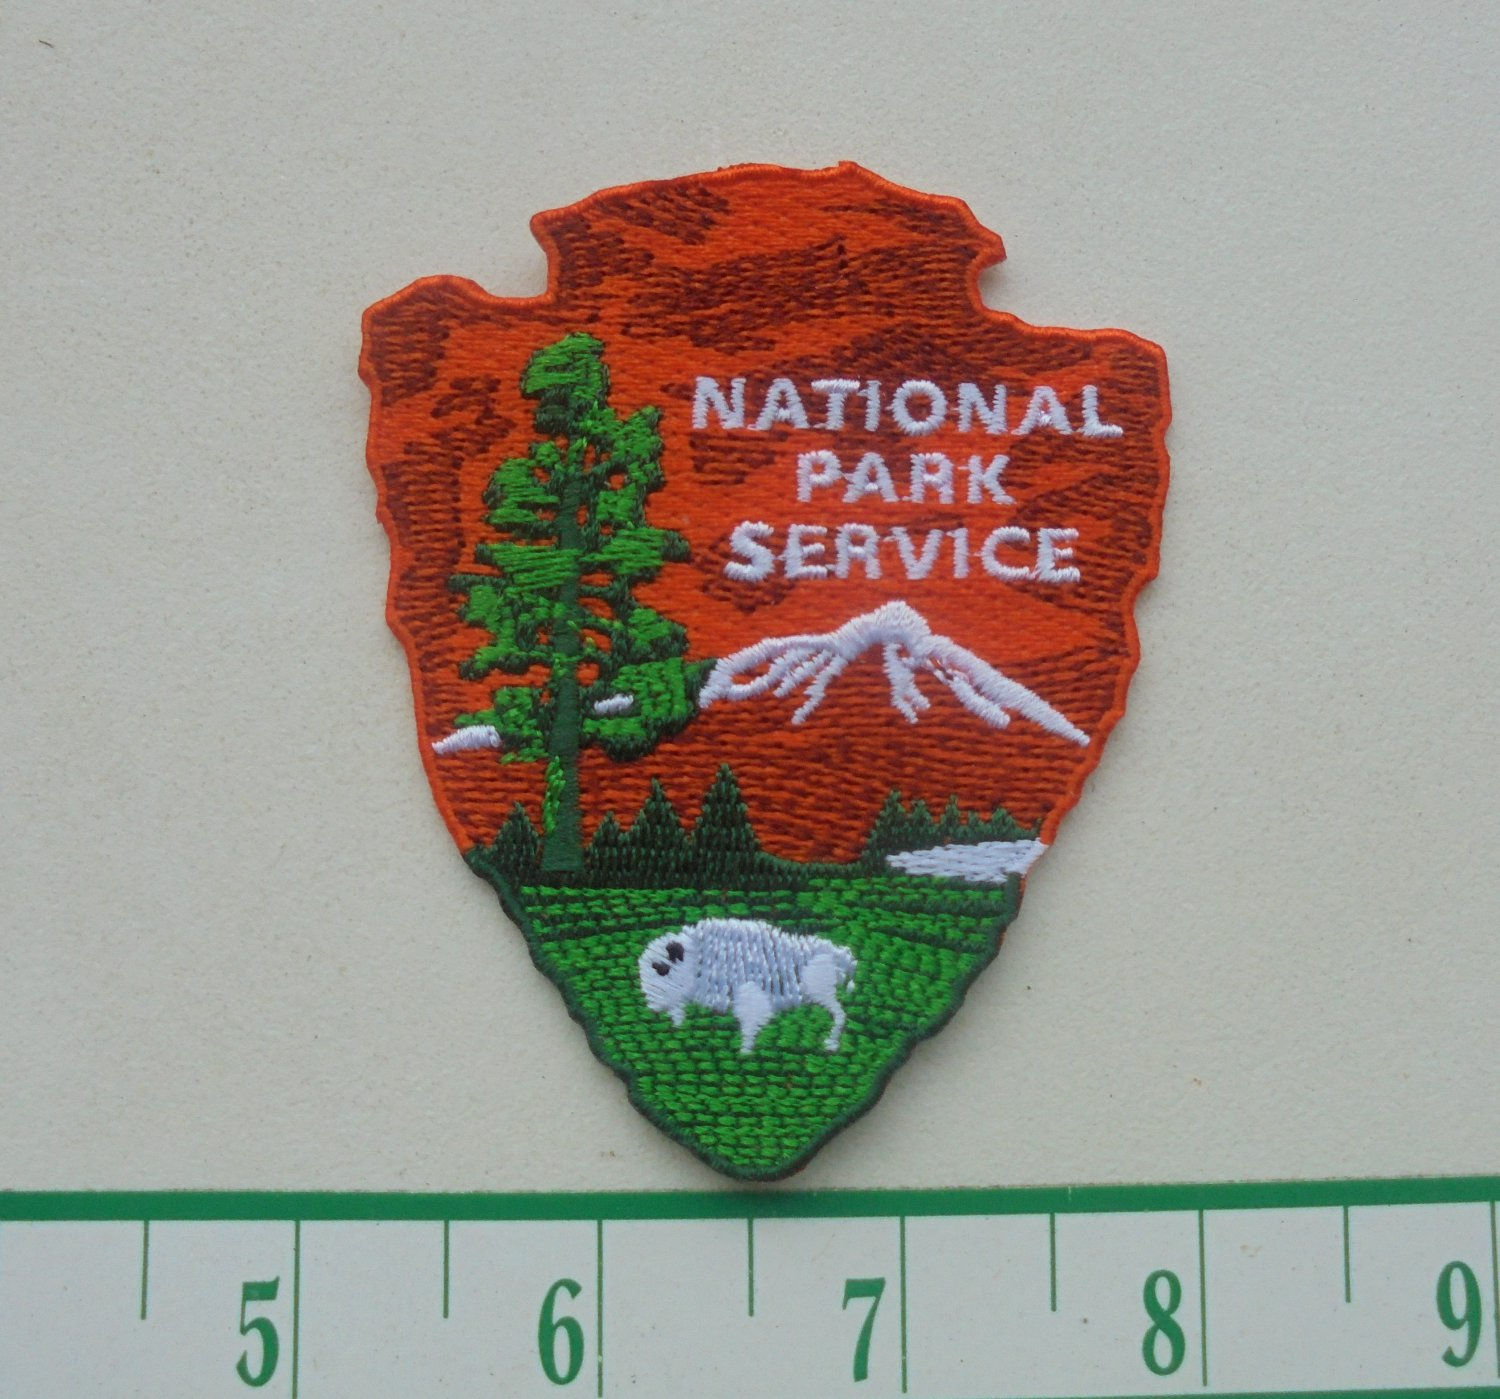 NATIONAL PARK SERVICE IRON ON CLOTH PATCH NEW-NICE